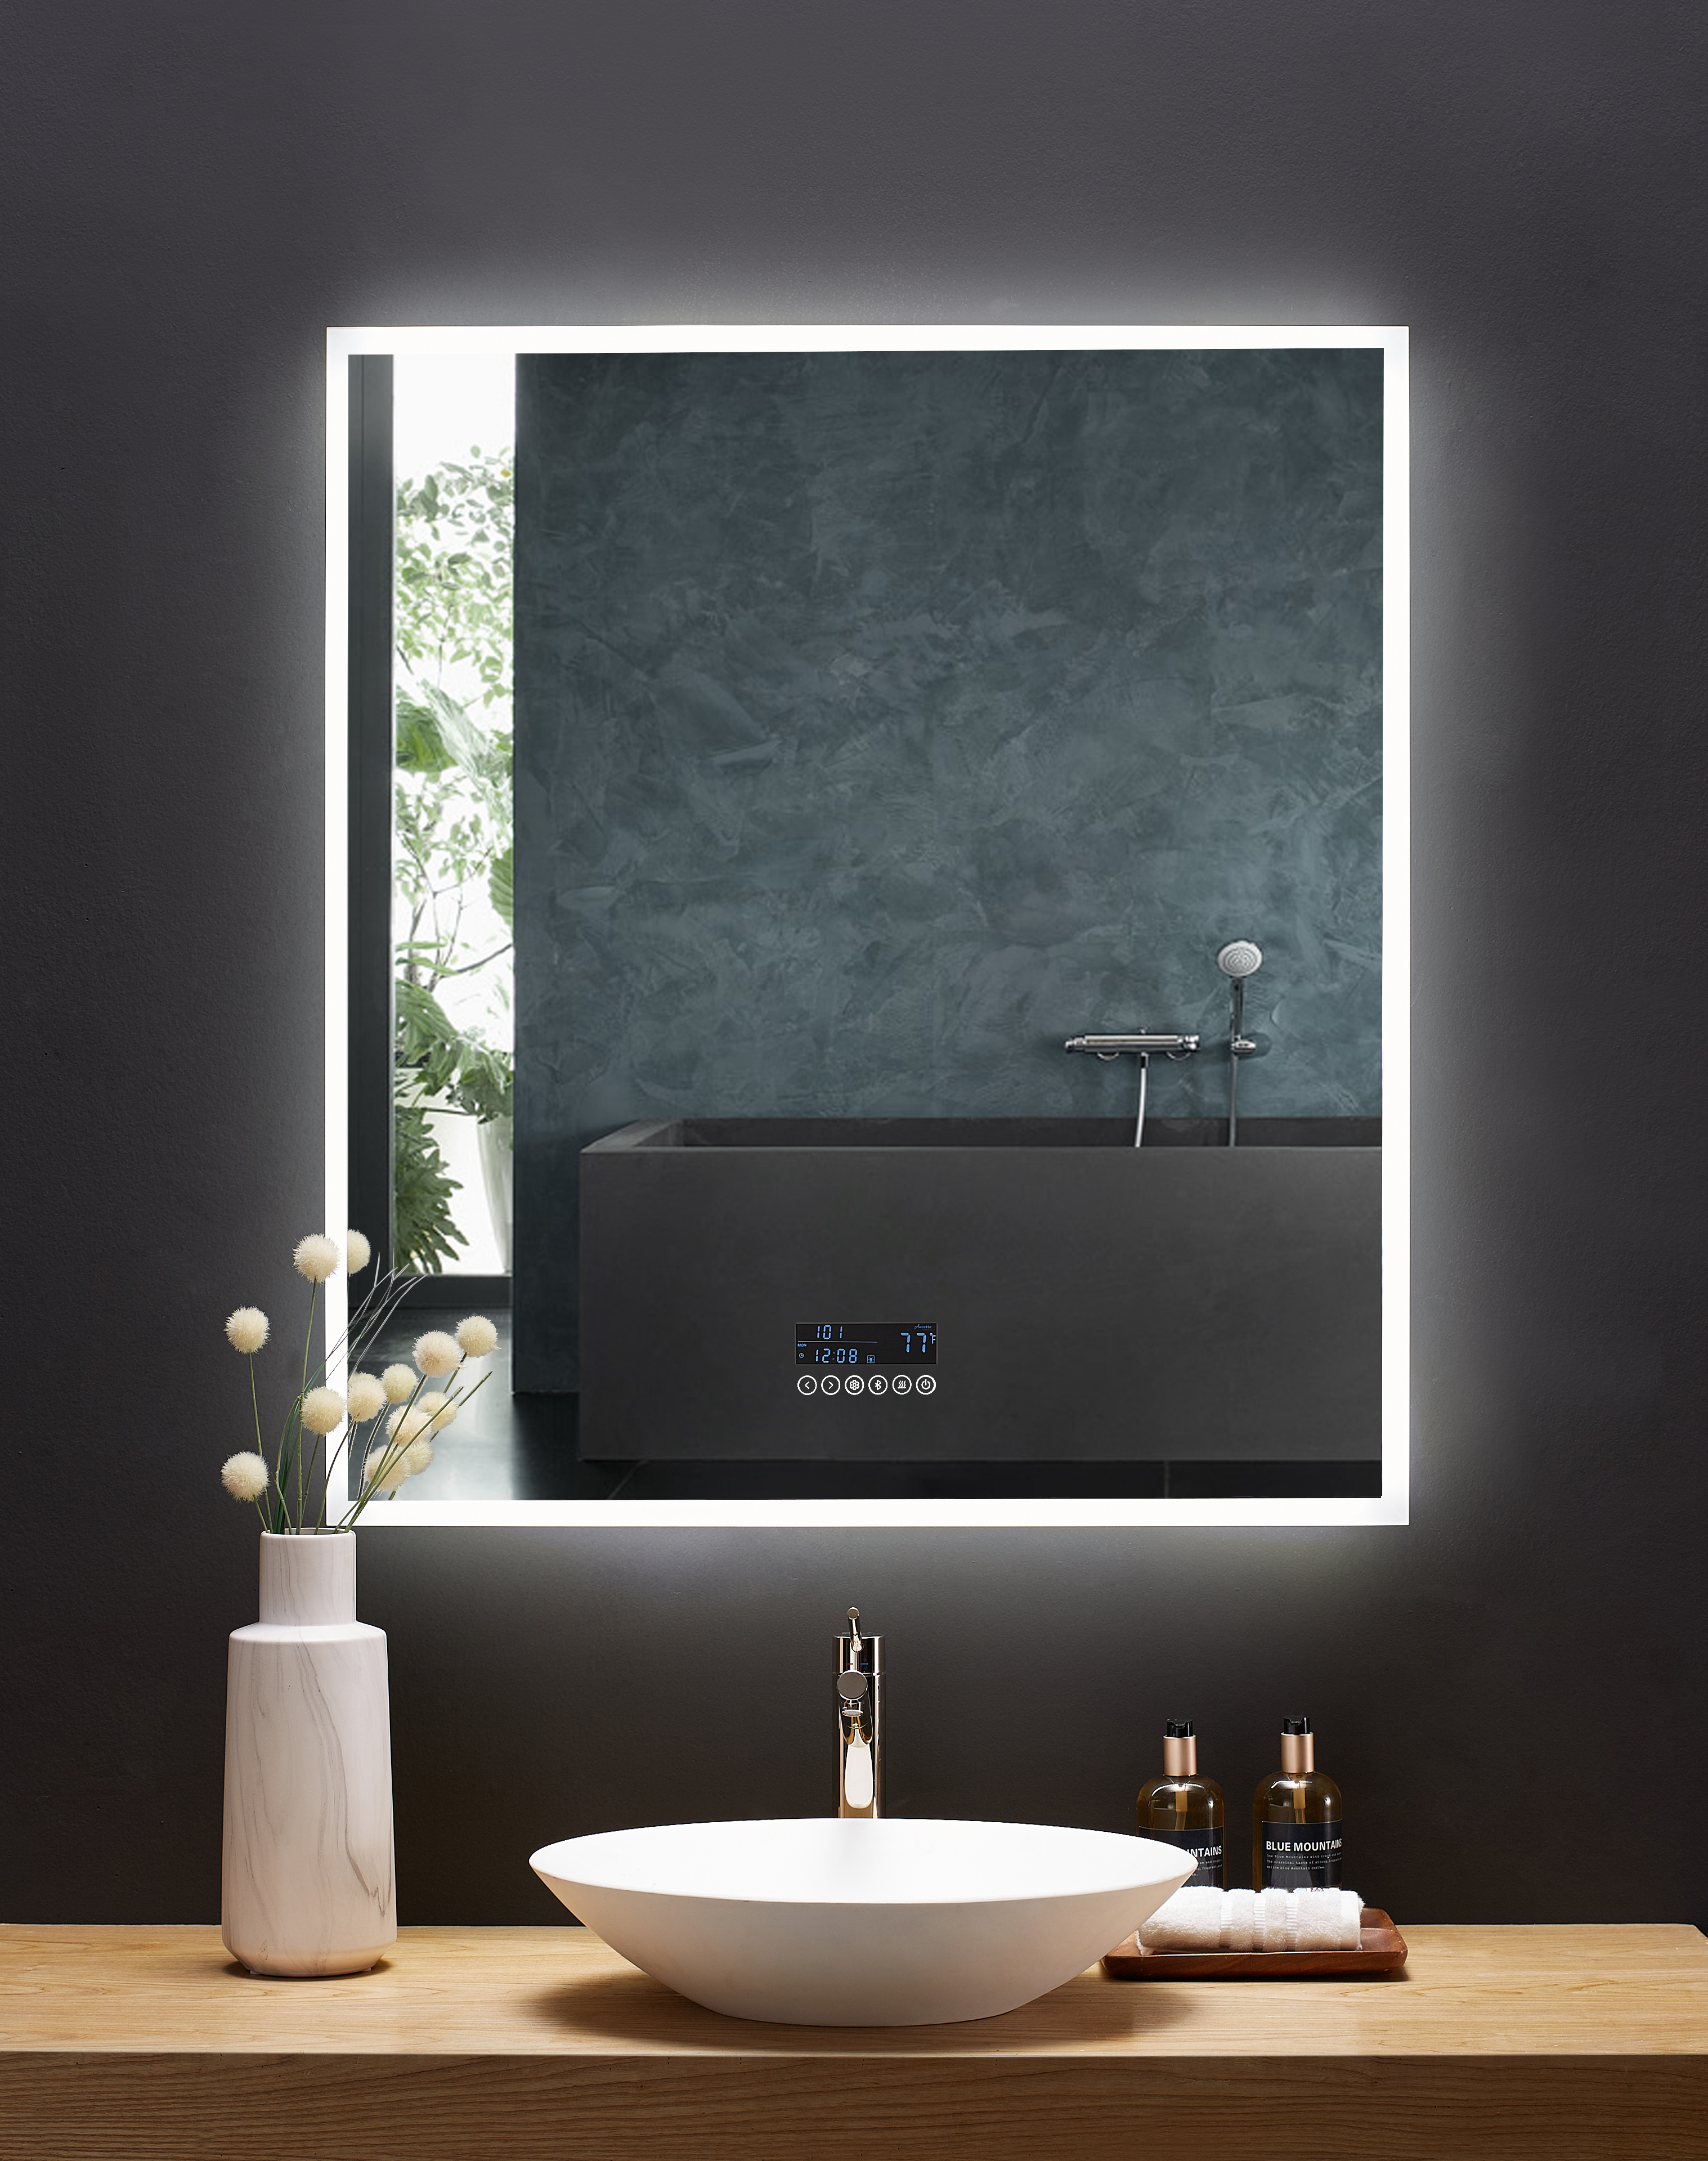 36 in. x 40 in. LED Frameless Mirror with Bluetooth, Defogger  and Digital Display